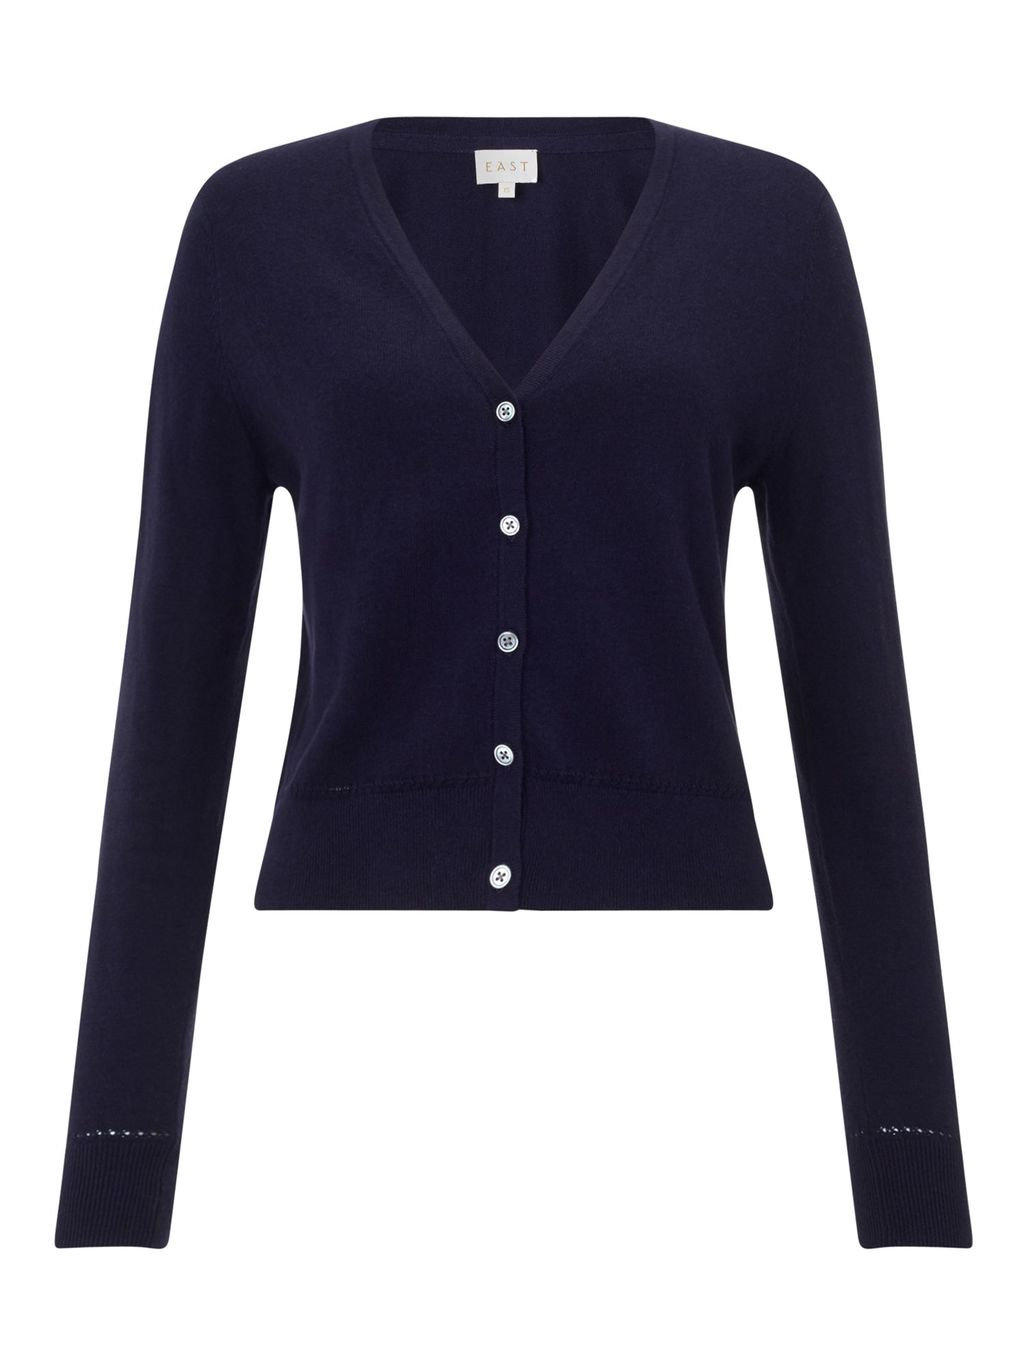 Cropped V Neck Cardigan, Ink - neckline: v-neck; pattern: plain; predominant colour: navy; occasions: casual, work, creative work; length: standard; style: standard; fibres: cotton - 100%; fit: standard fit; sleeve length: long sleeve; sleeve style: standard; texture group: knits/crochet; pattern type: knitted - fine stitch; season: s/s 2016; wardrobe: basic